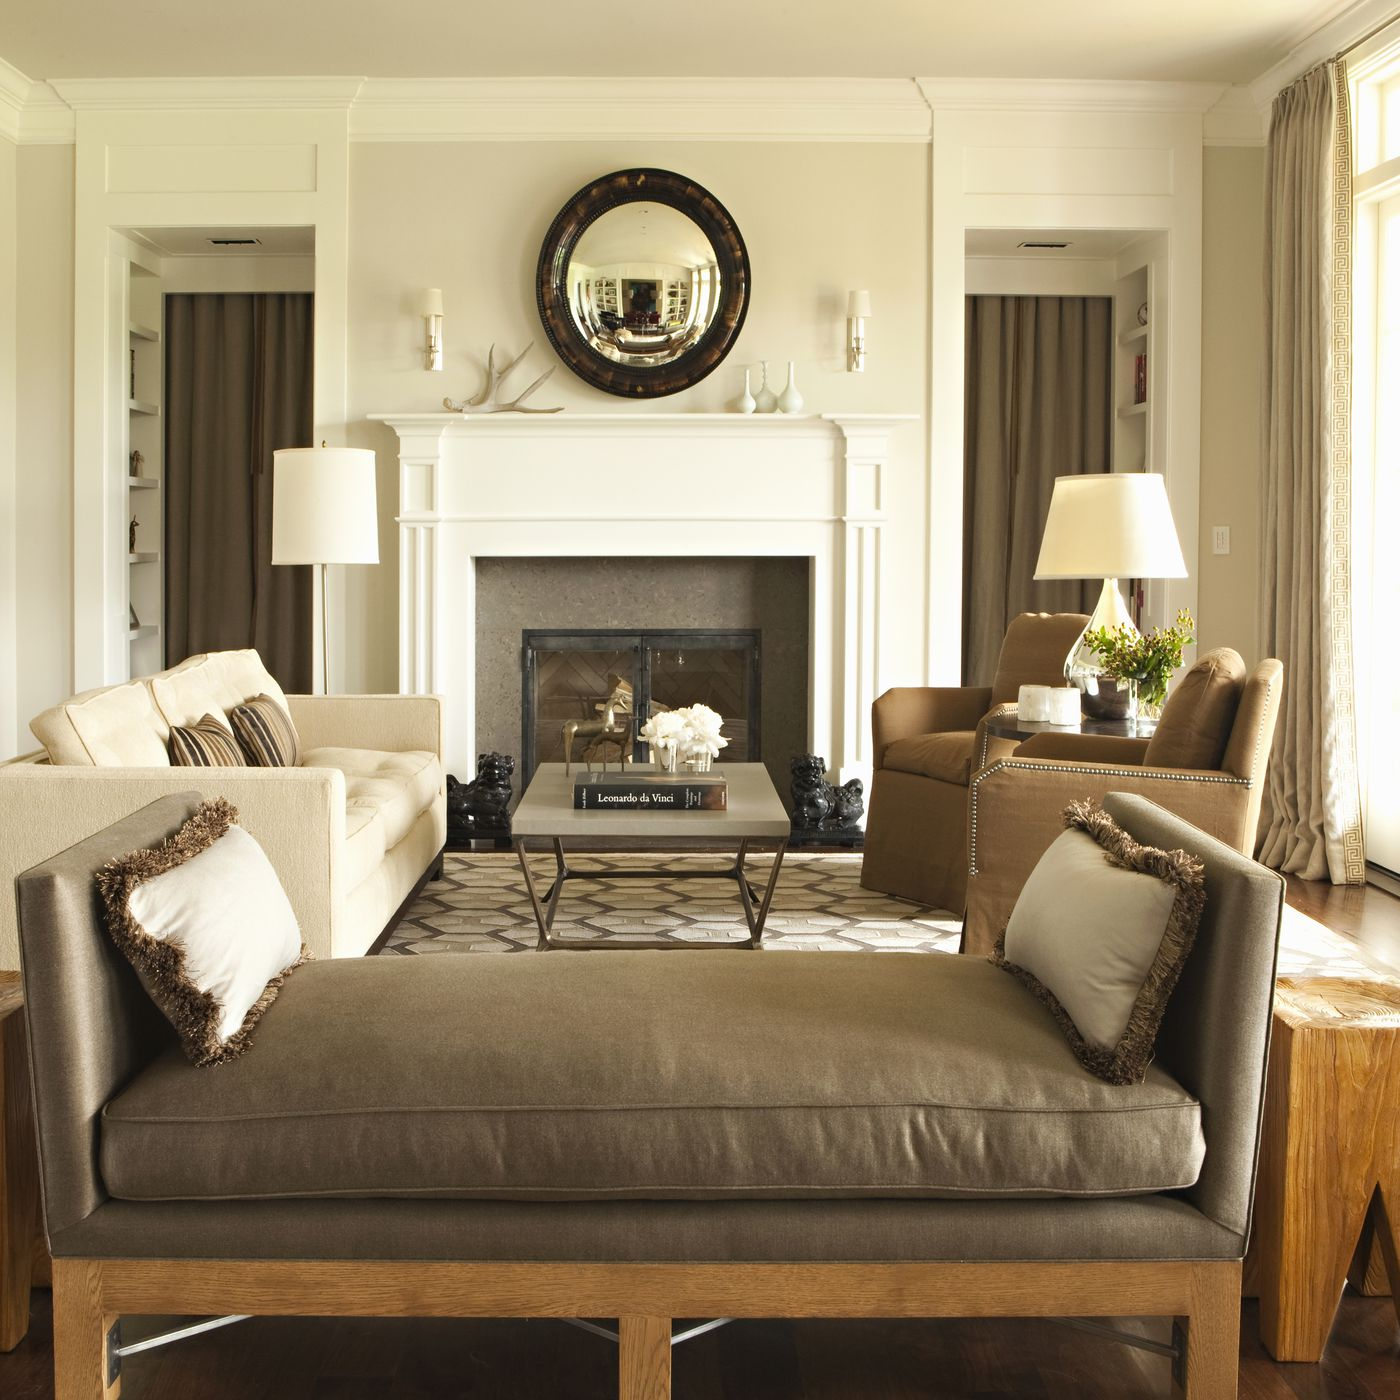 Benjamin Moore Colors For Your Living Room Decor: Benjamin Moore Paint Colors For Living Room Modern House